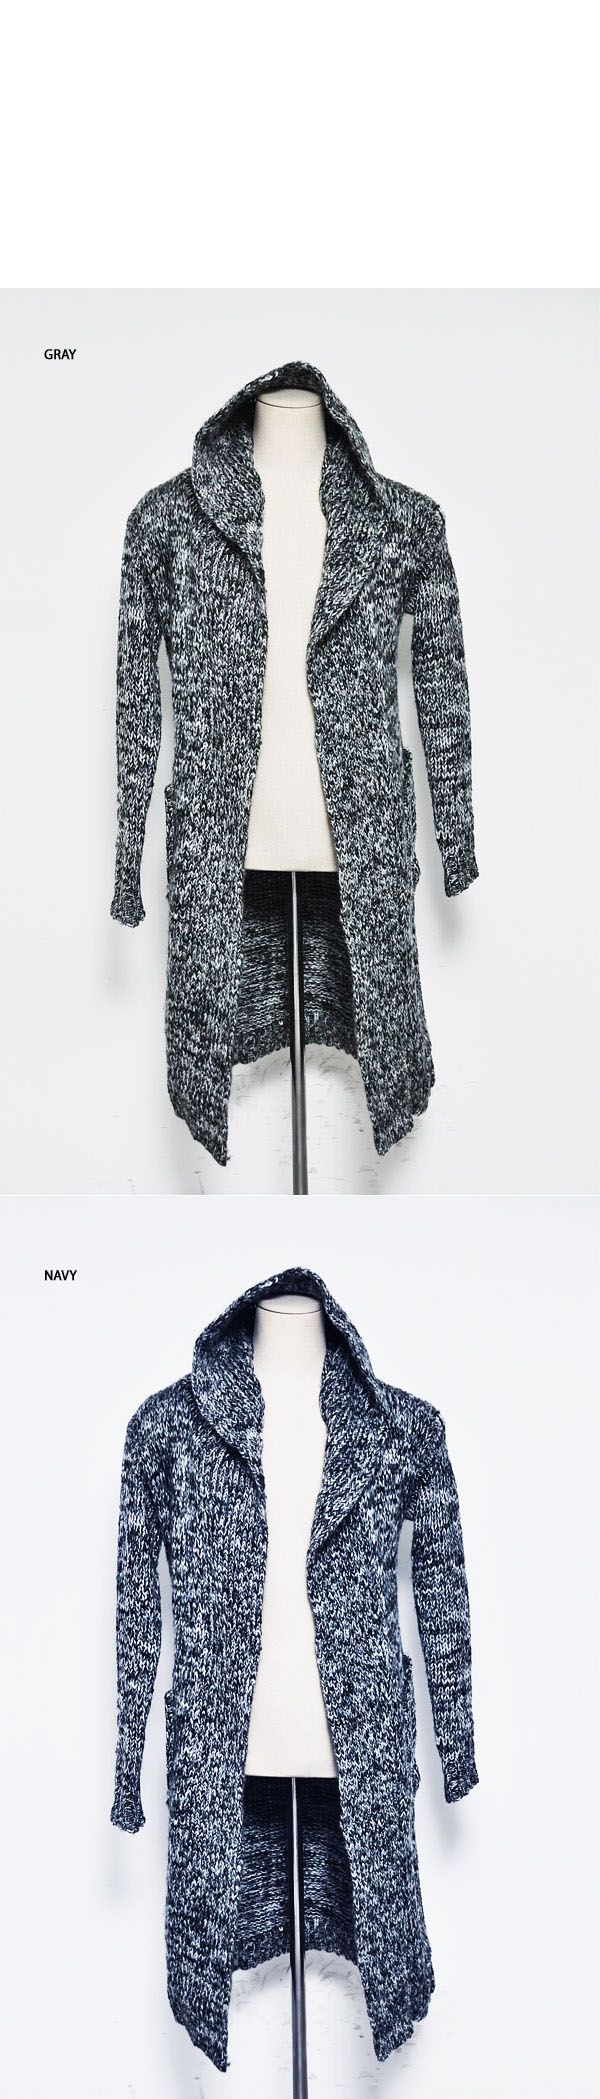 Outerwear :: Coats :: Re)Edge Long Hood Chunky Knit Cape Coat-Coat 59 - Mens Fashion Clothing For An Attractive Guy Look